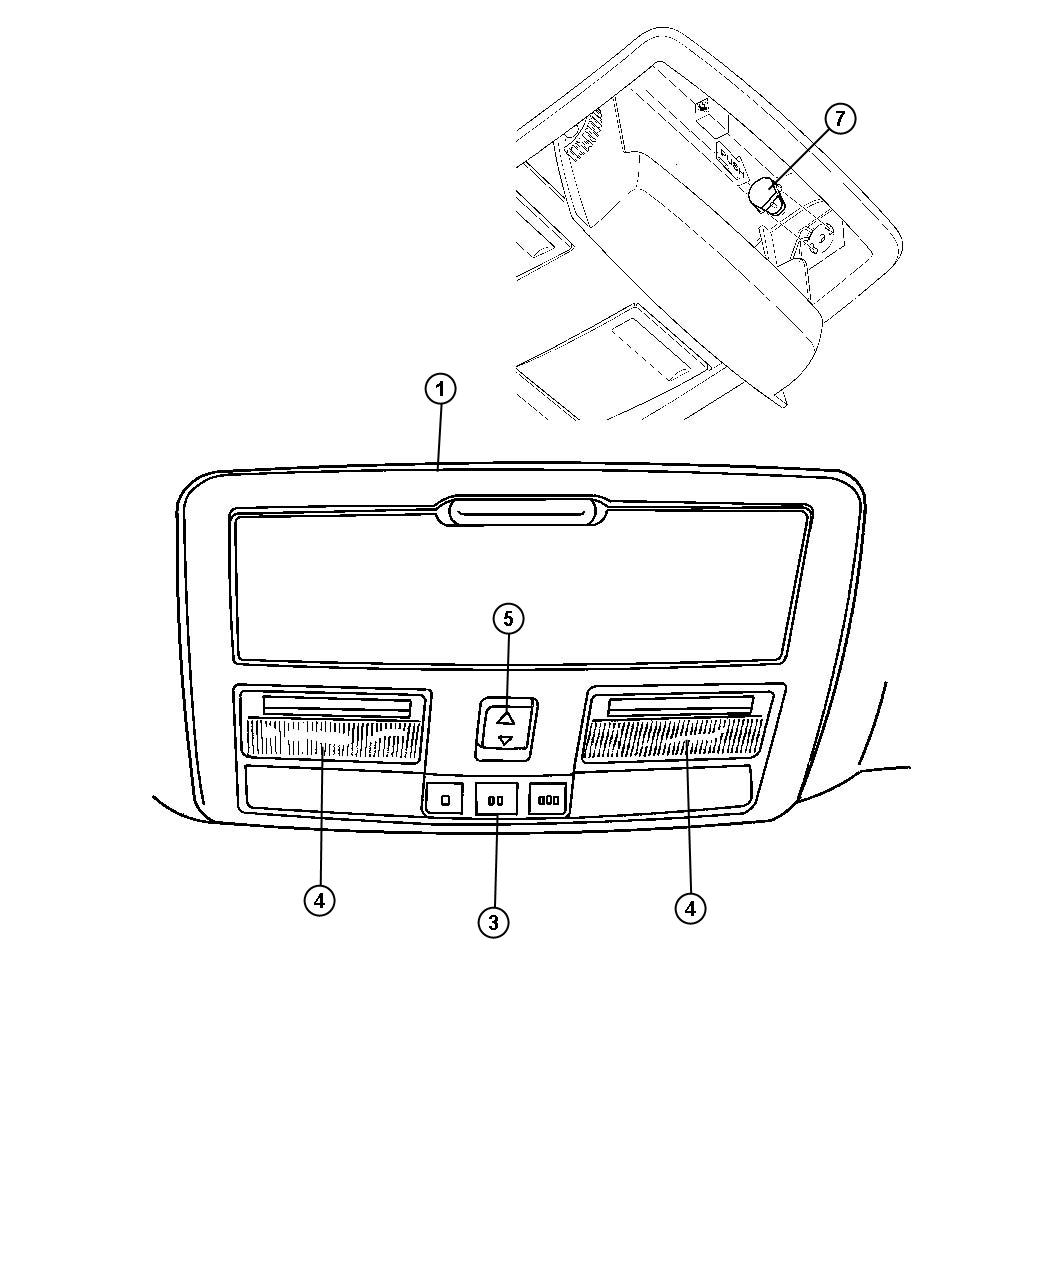 Dodge Magnum Console Overhead Gnc Without Gwa Without Gwa Trim O0 Color